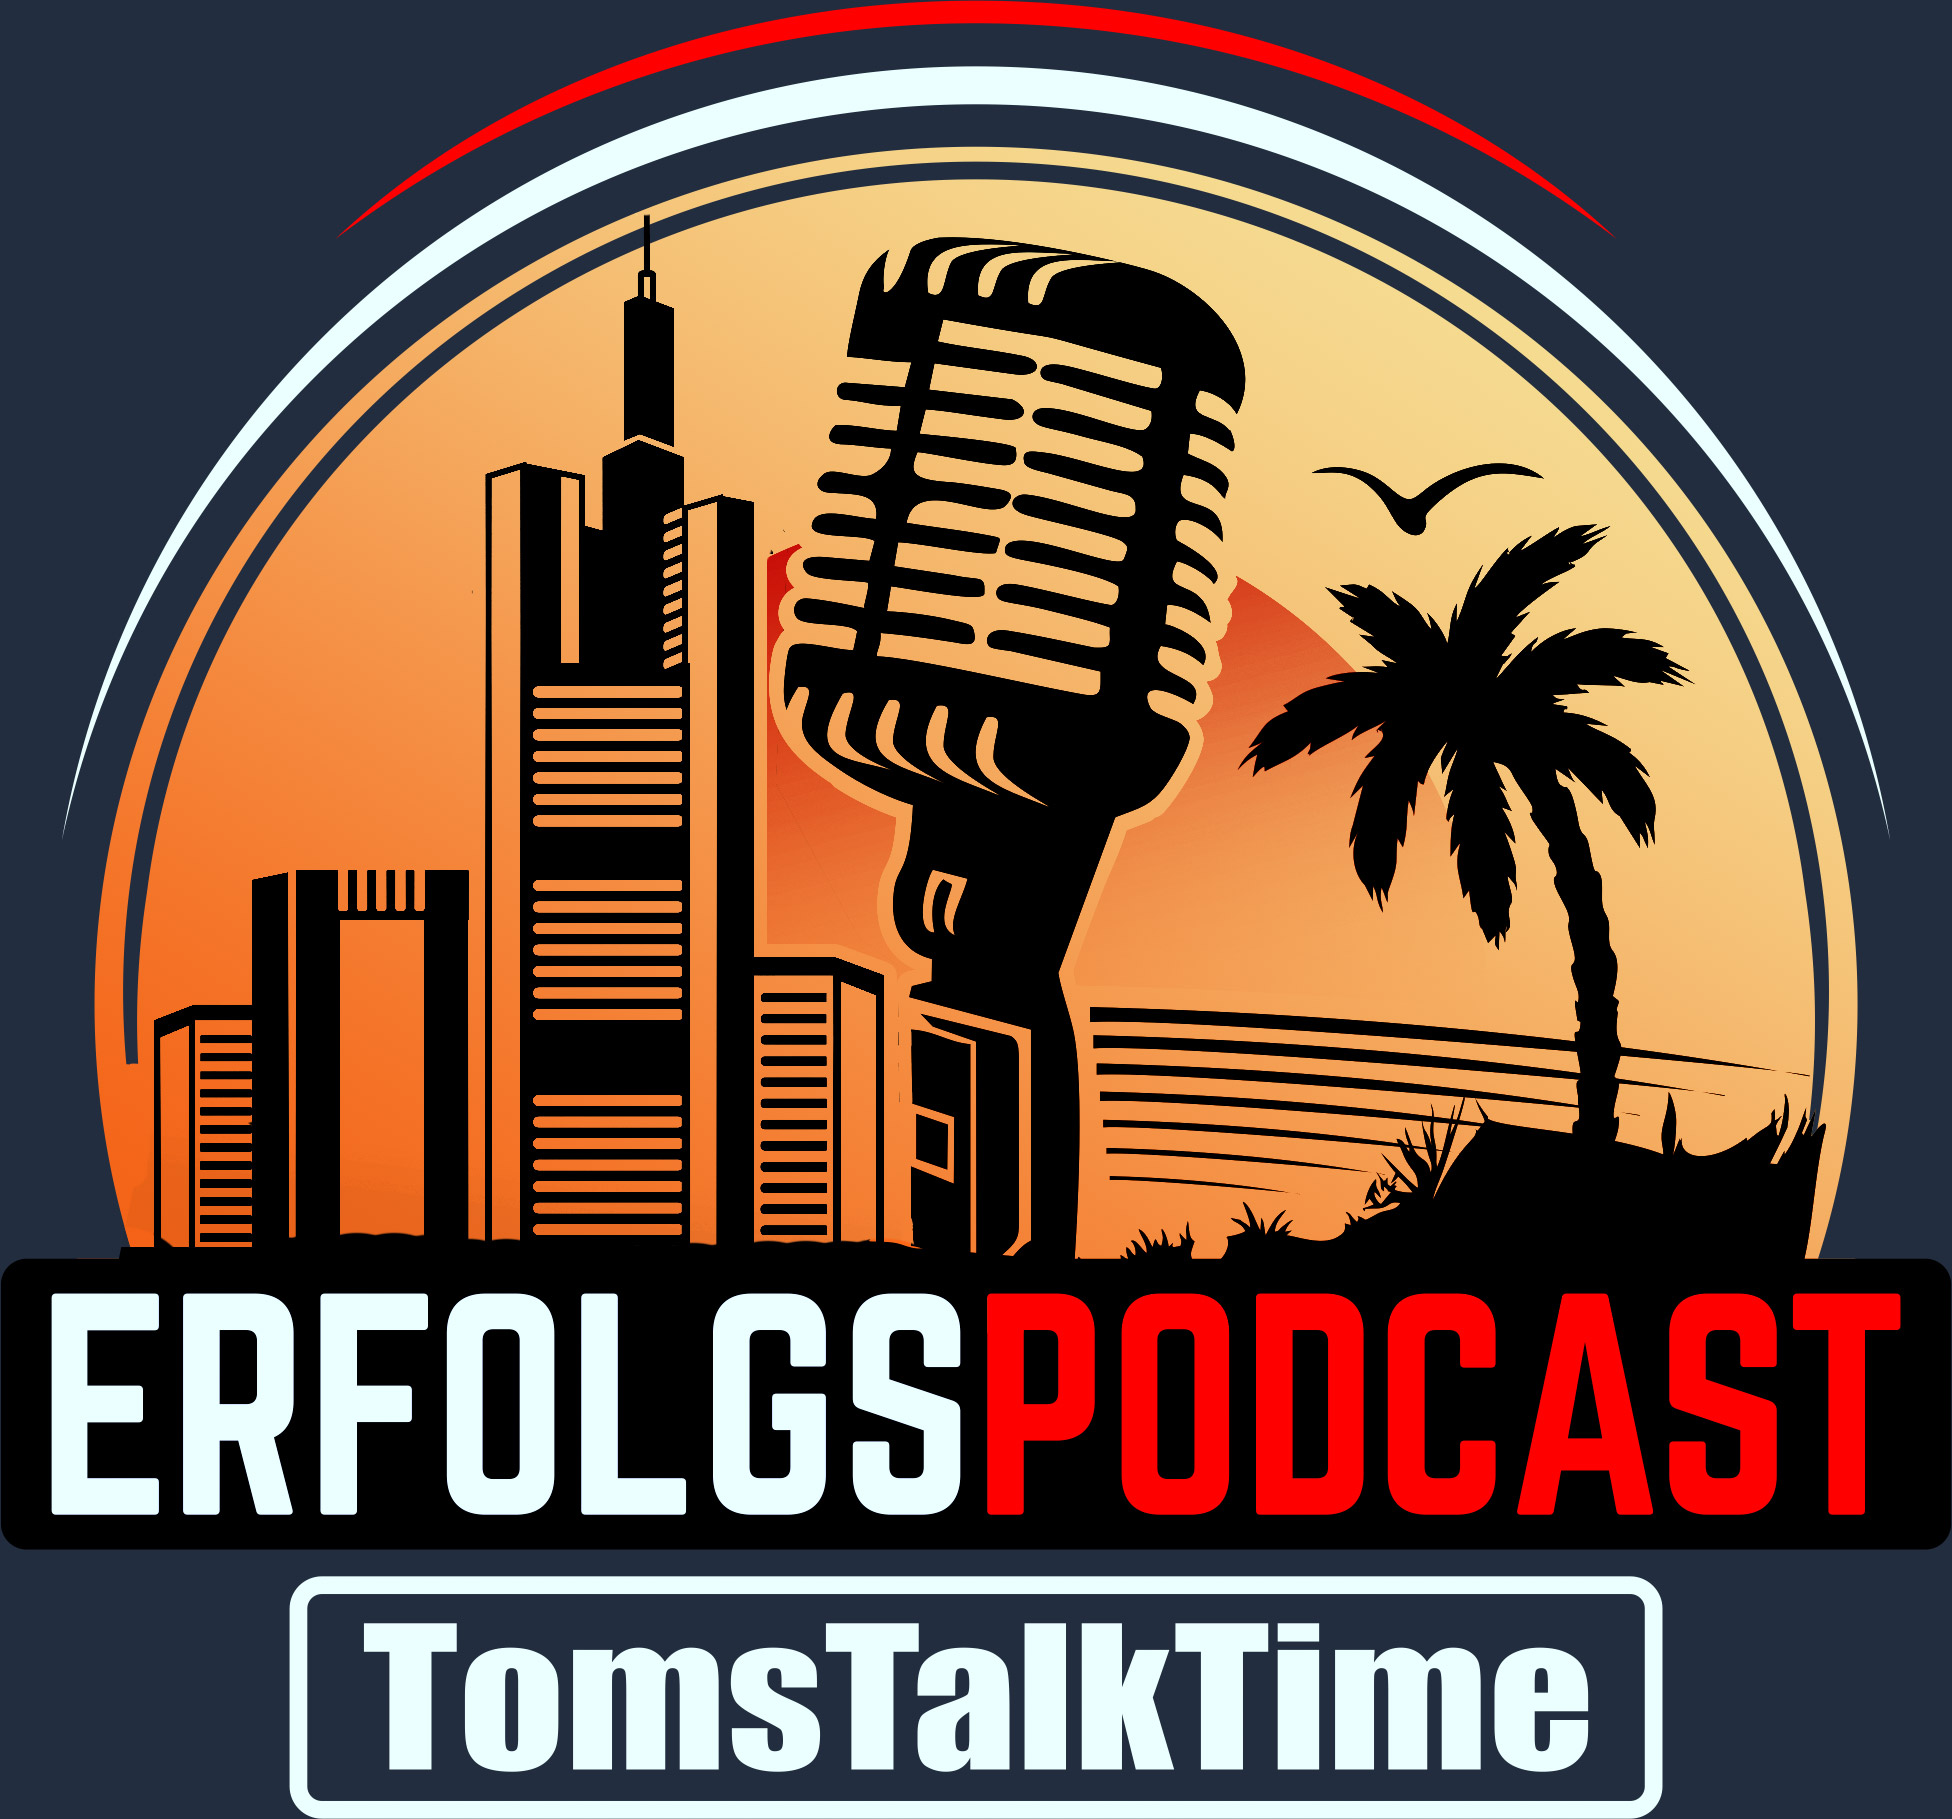 Podcasten als Marketingtool mit Tom Kaules – Folge 63 DBT